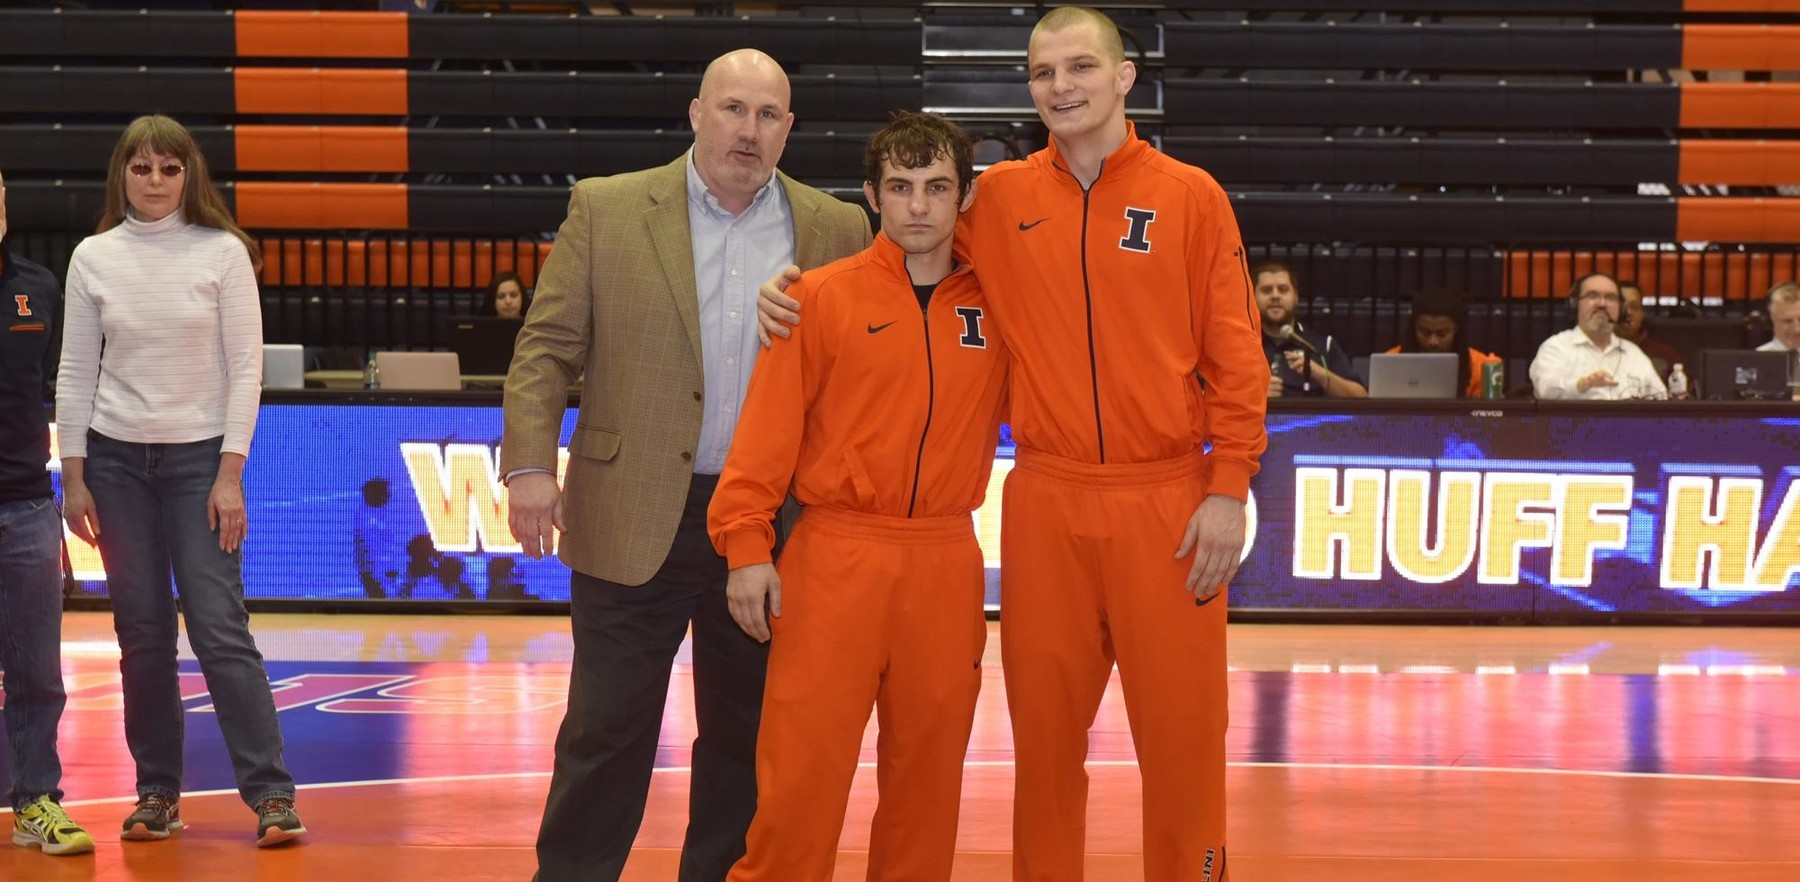 Senior wrestlers Zane Richards and Zac Brunson with Coach Heffernan